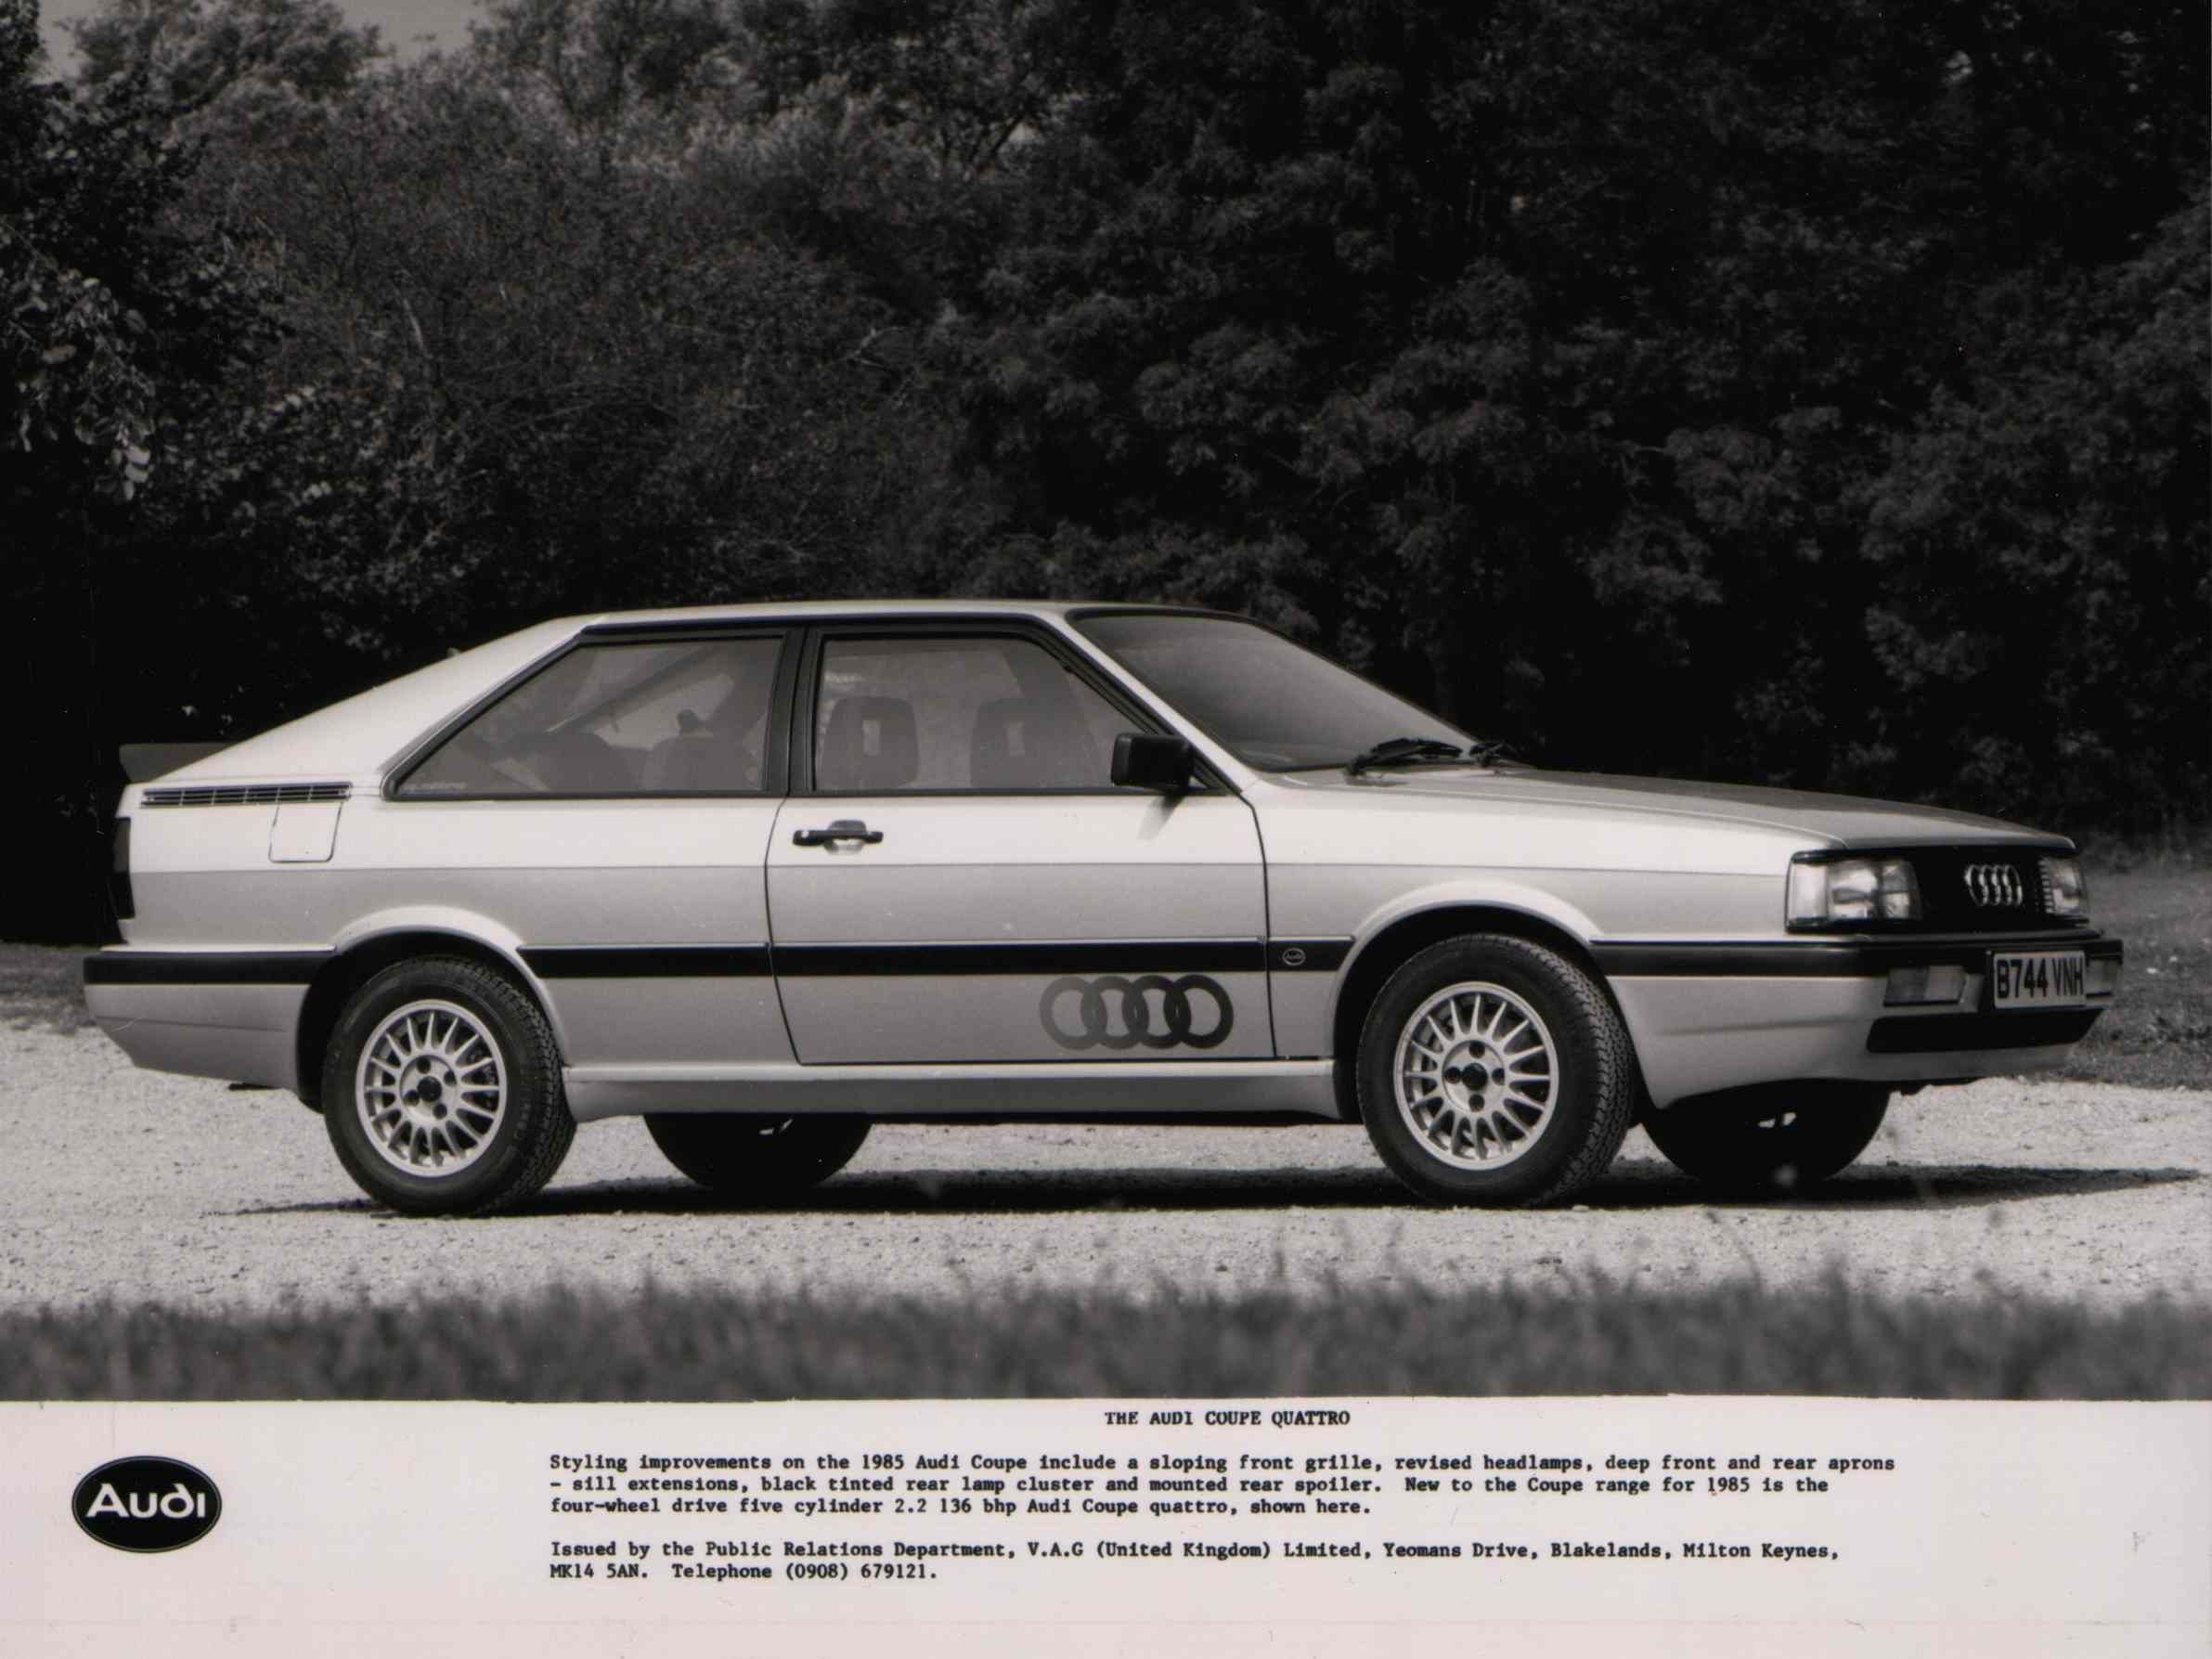 Audi Coupe Quattro Audi Pinterest Audi Coupe And Cars - Audi coupe